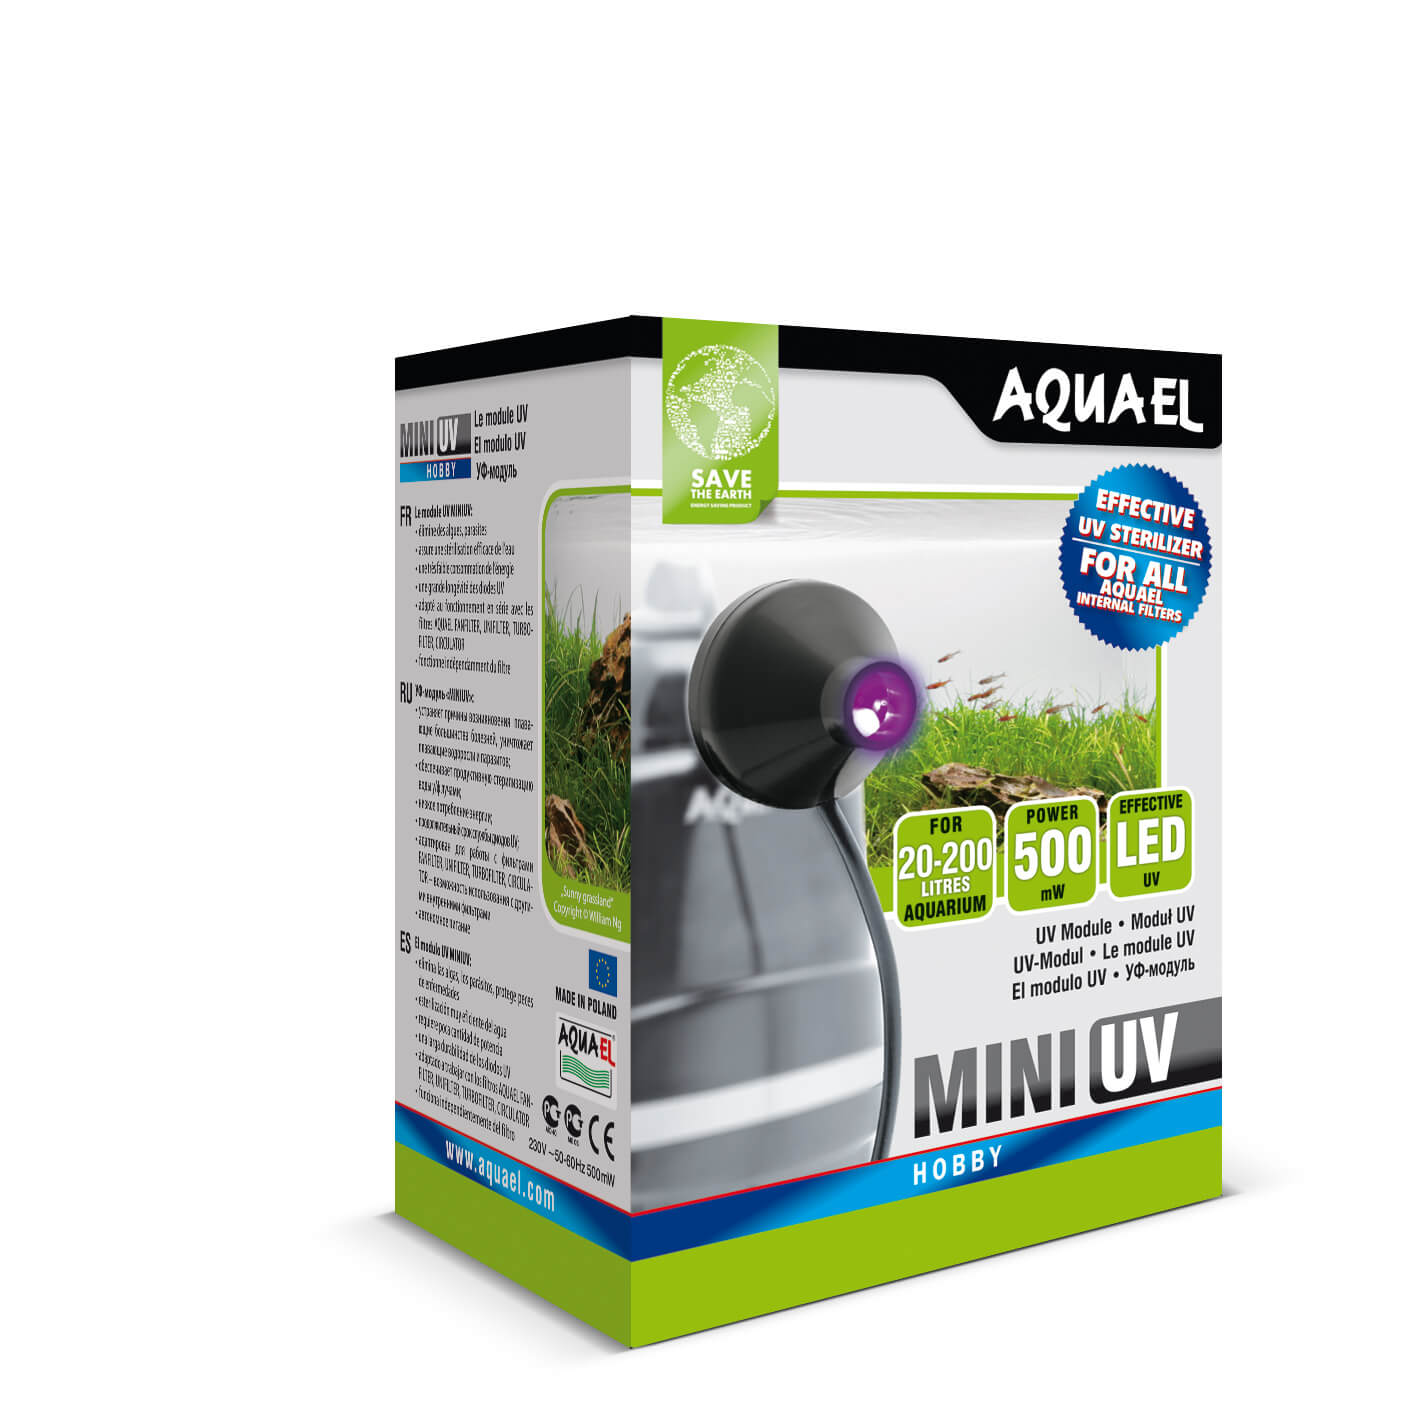 Aquael Mini UV (For Fan Filters, Turbo Filters, Unifilter's,